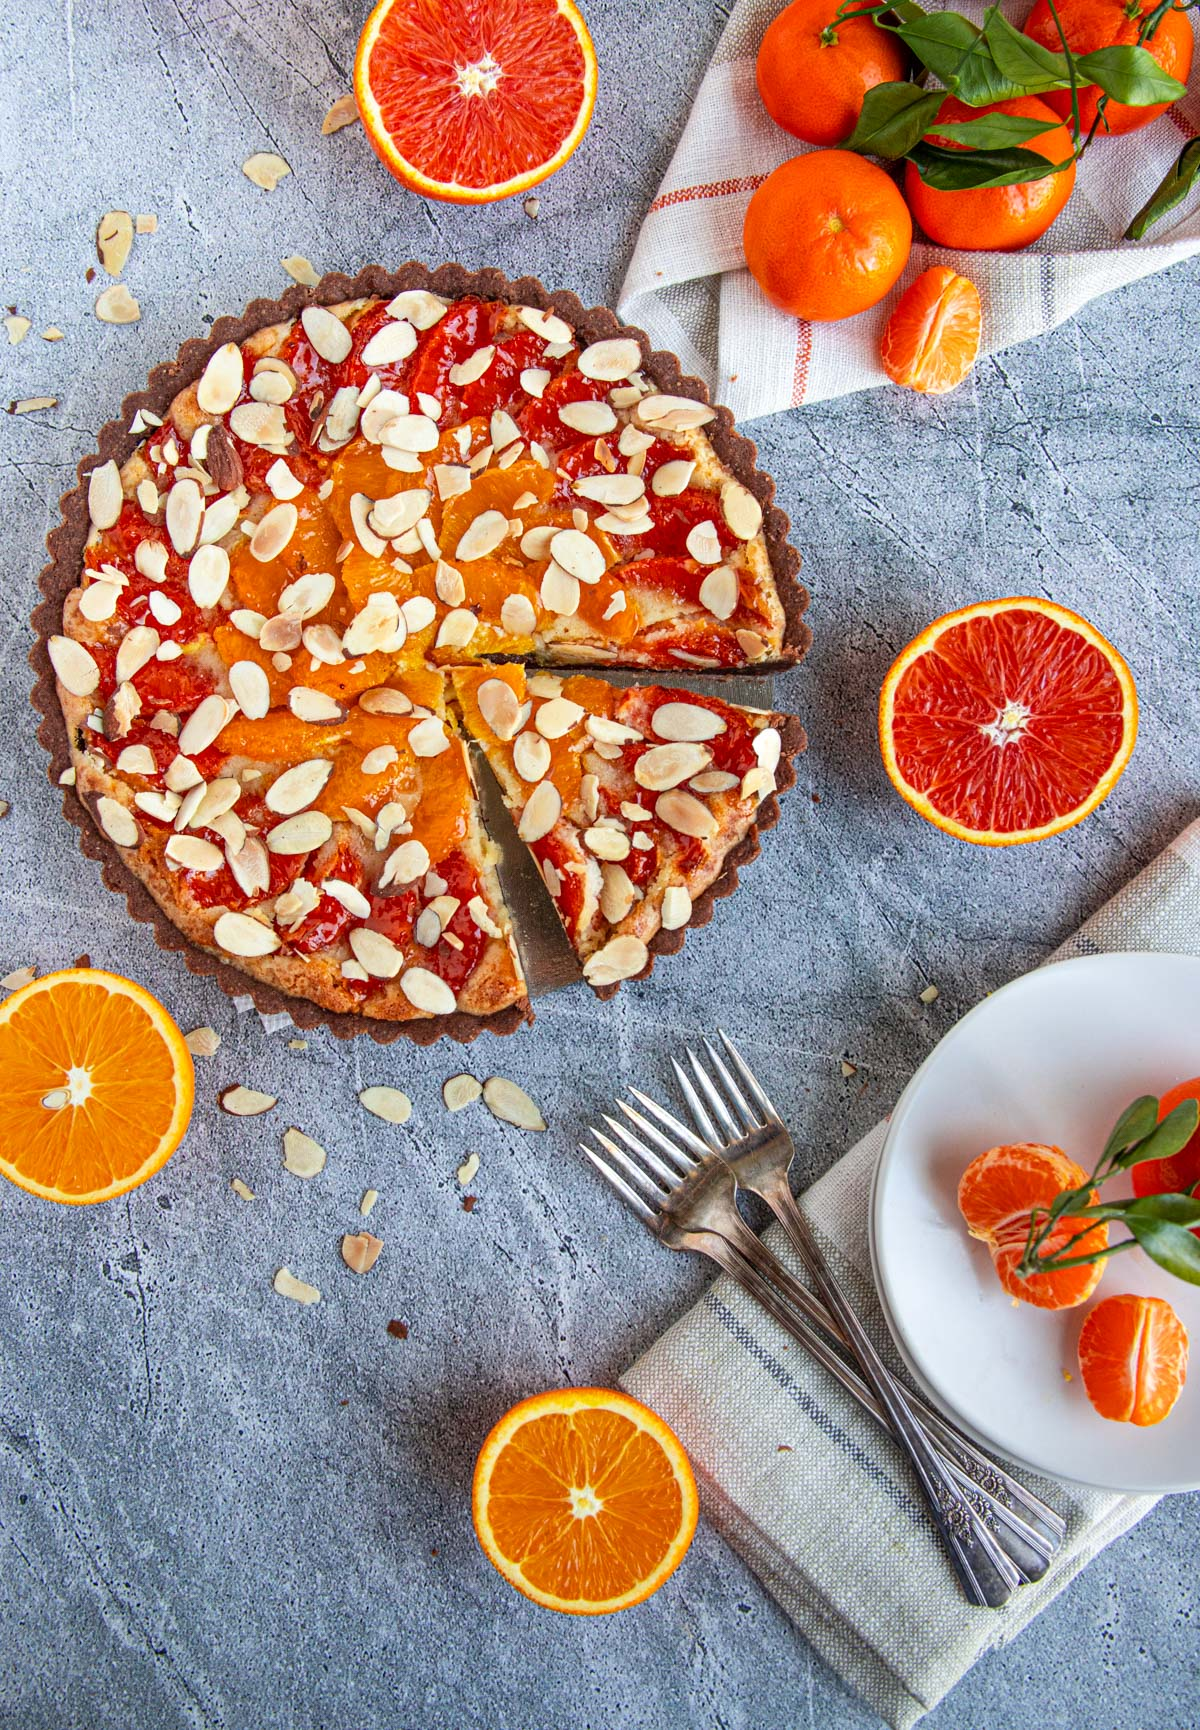 Orange and Chocolate Almond Tart with fresh cut oranges, forks and dessert plates